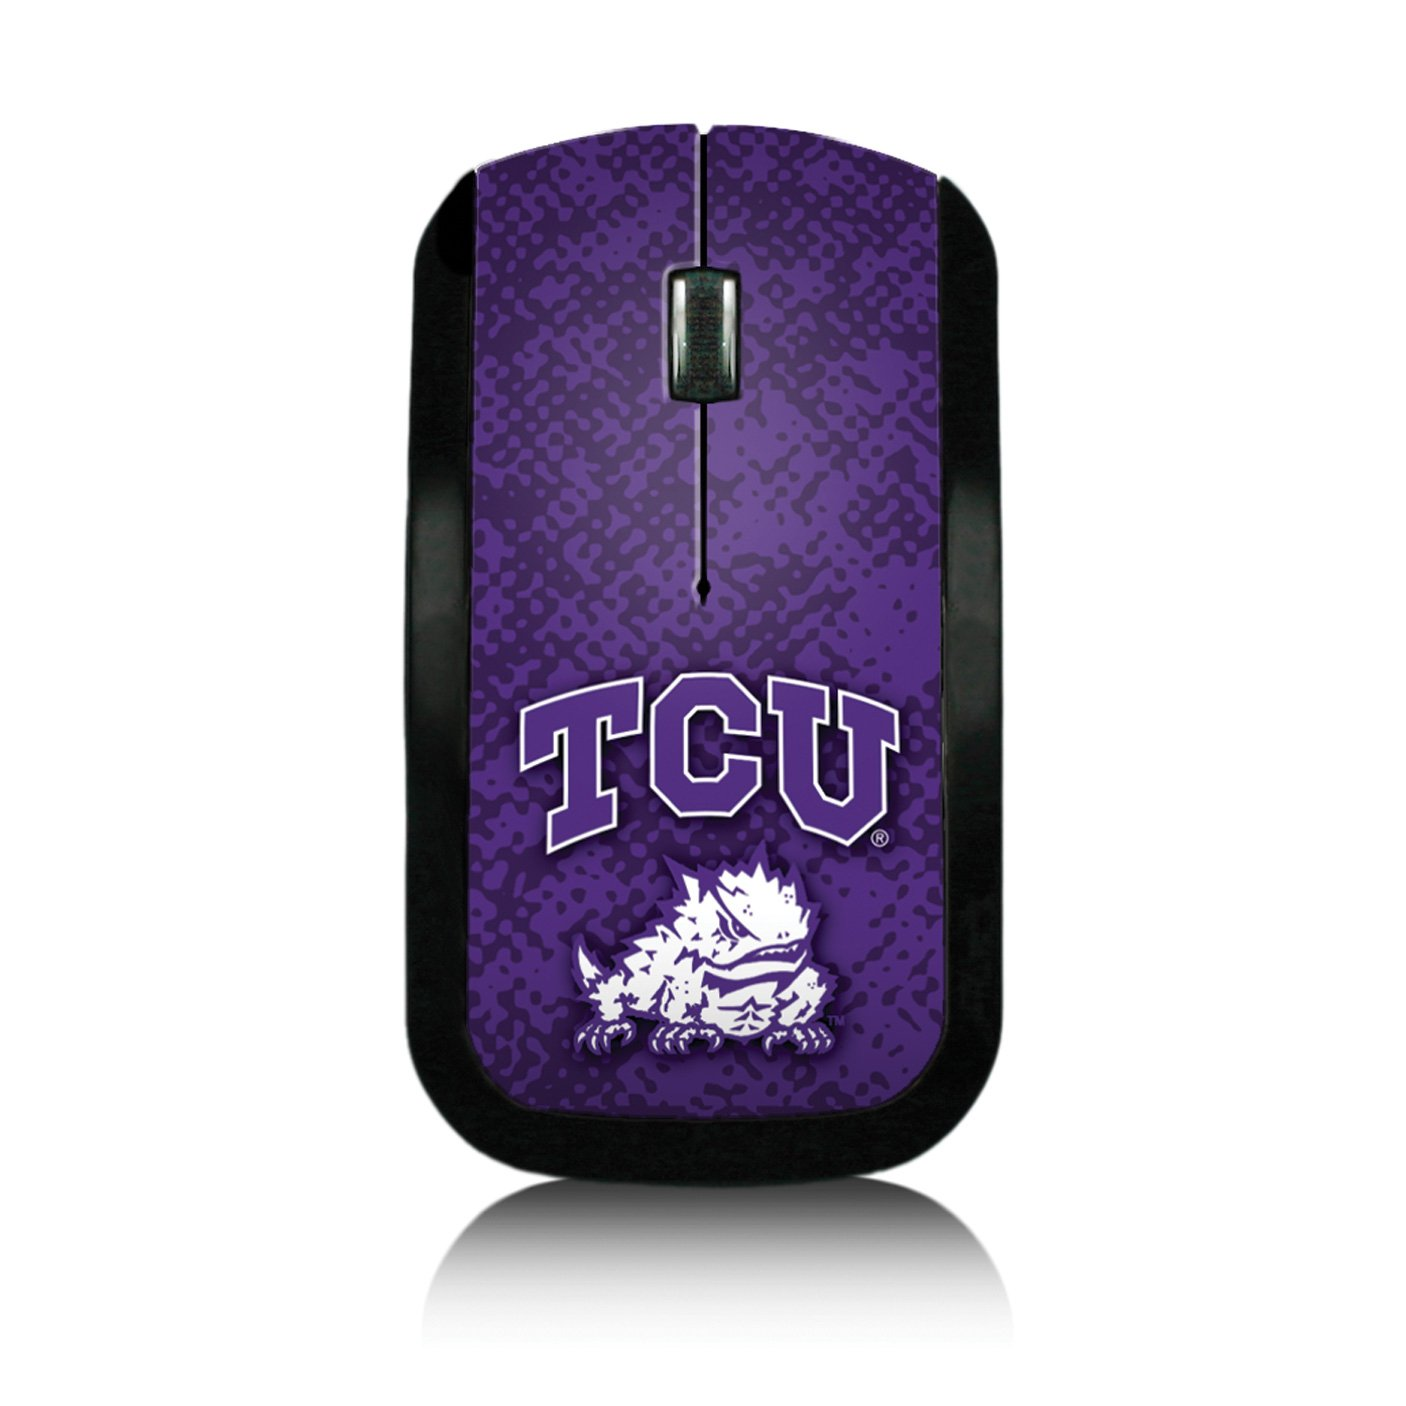 Texas Christian Horned Frogs Wireless USB Mouse officially licensed by Texas Christian University Slim Sleek Low-Profile Portable by keyscaper®